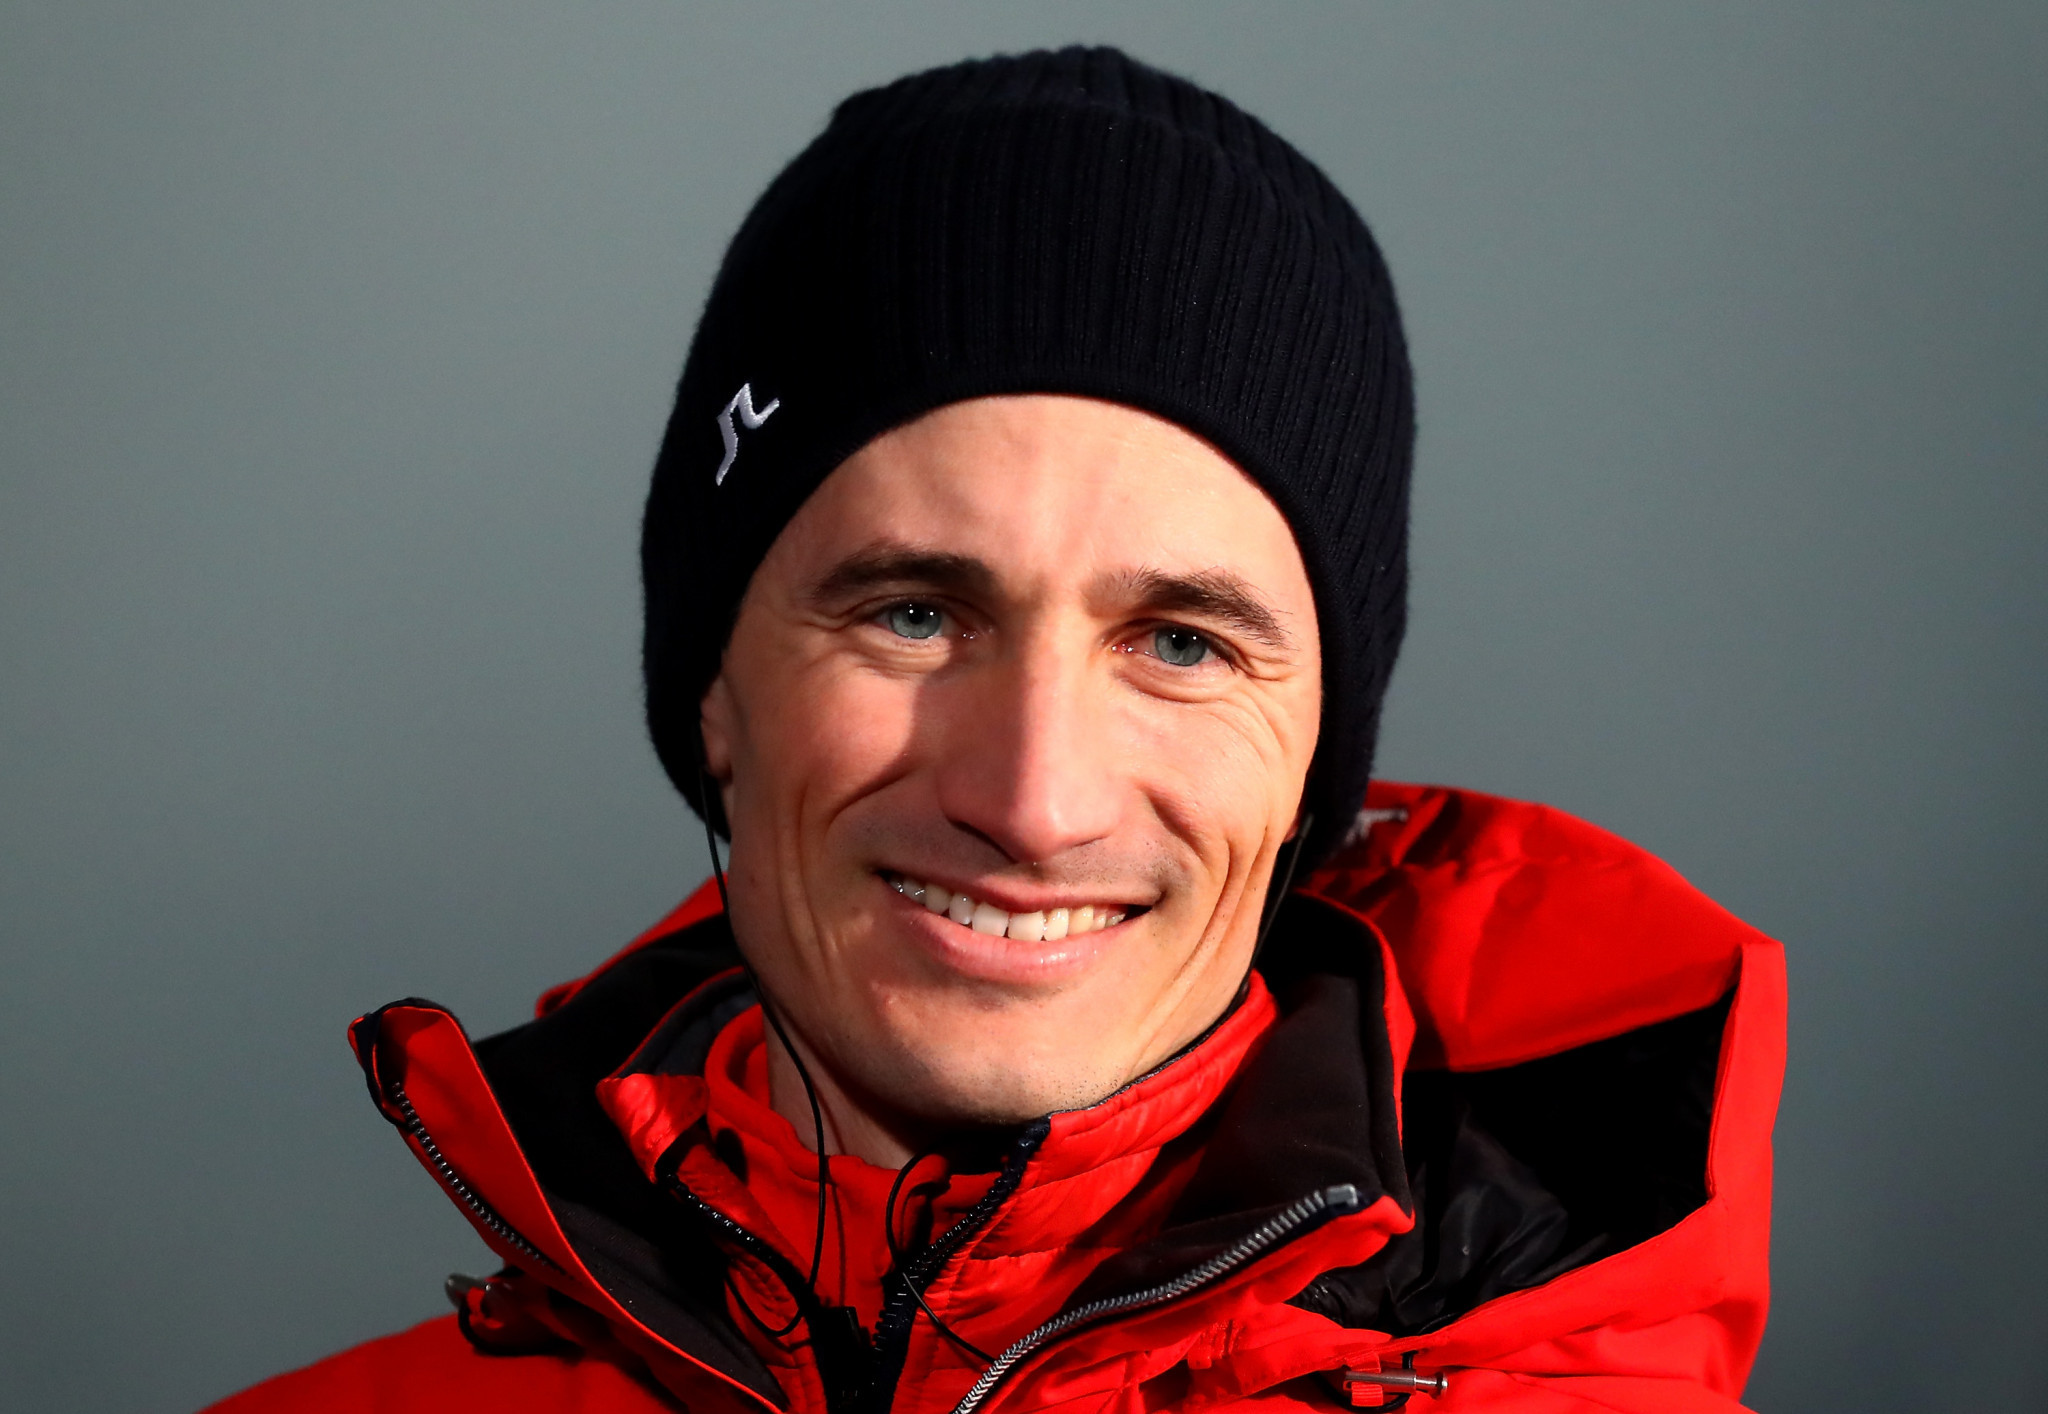 German Ski Association appoint Olympic ski jumping gold medallist Martin Schmitt as talent scout